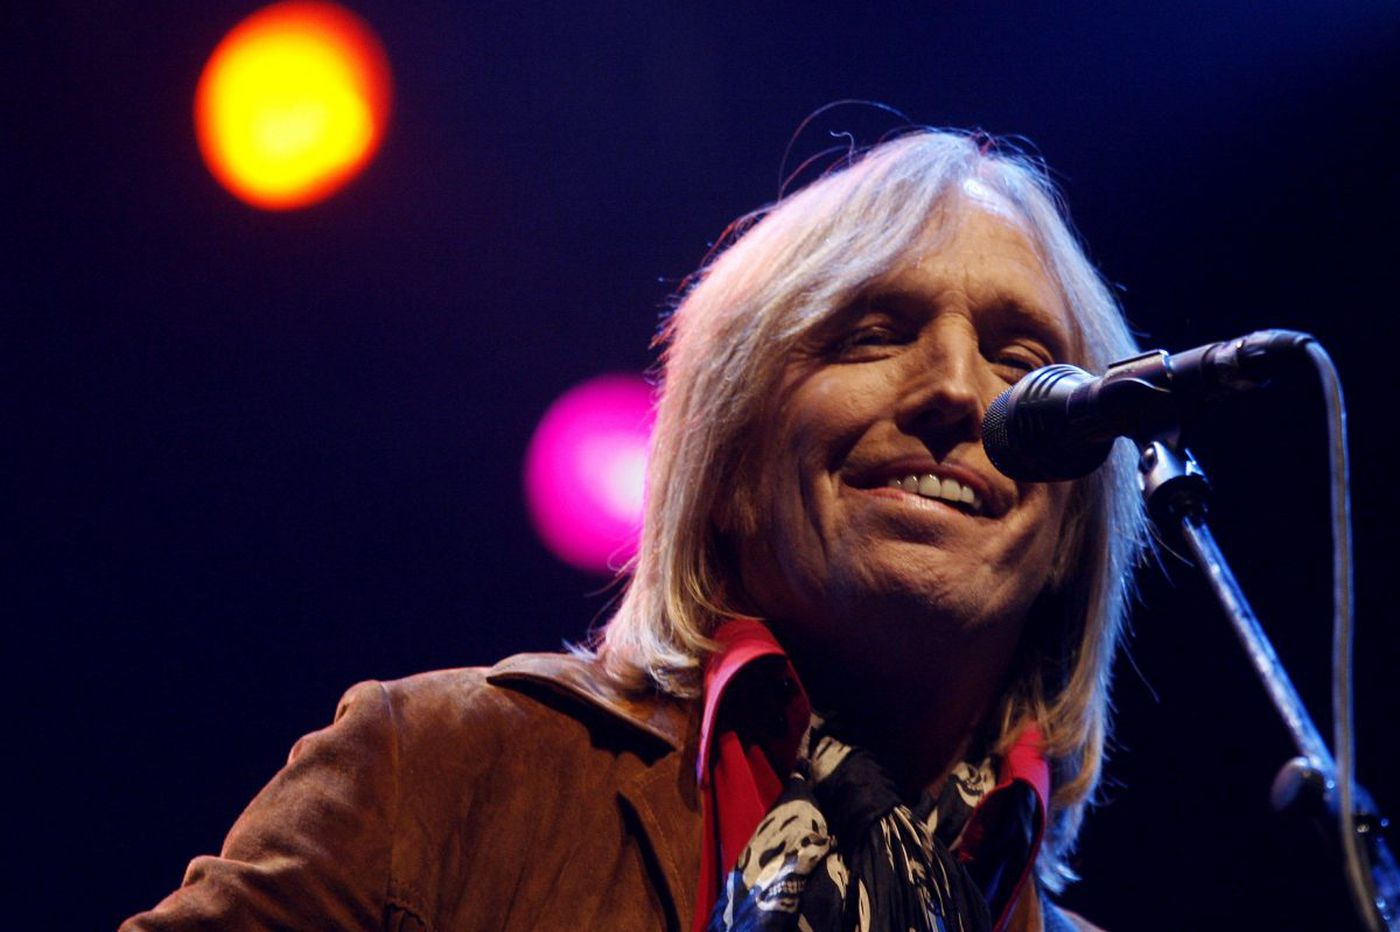 Tom Petty and David Bowie tributes, Olympics at the Penn Museum, Valentine's Day Cheese-making and more things to do in Philadelphia, Feb. 9-16